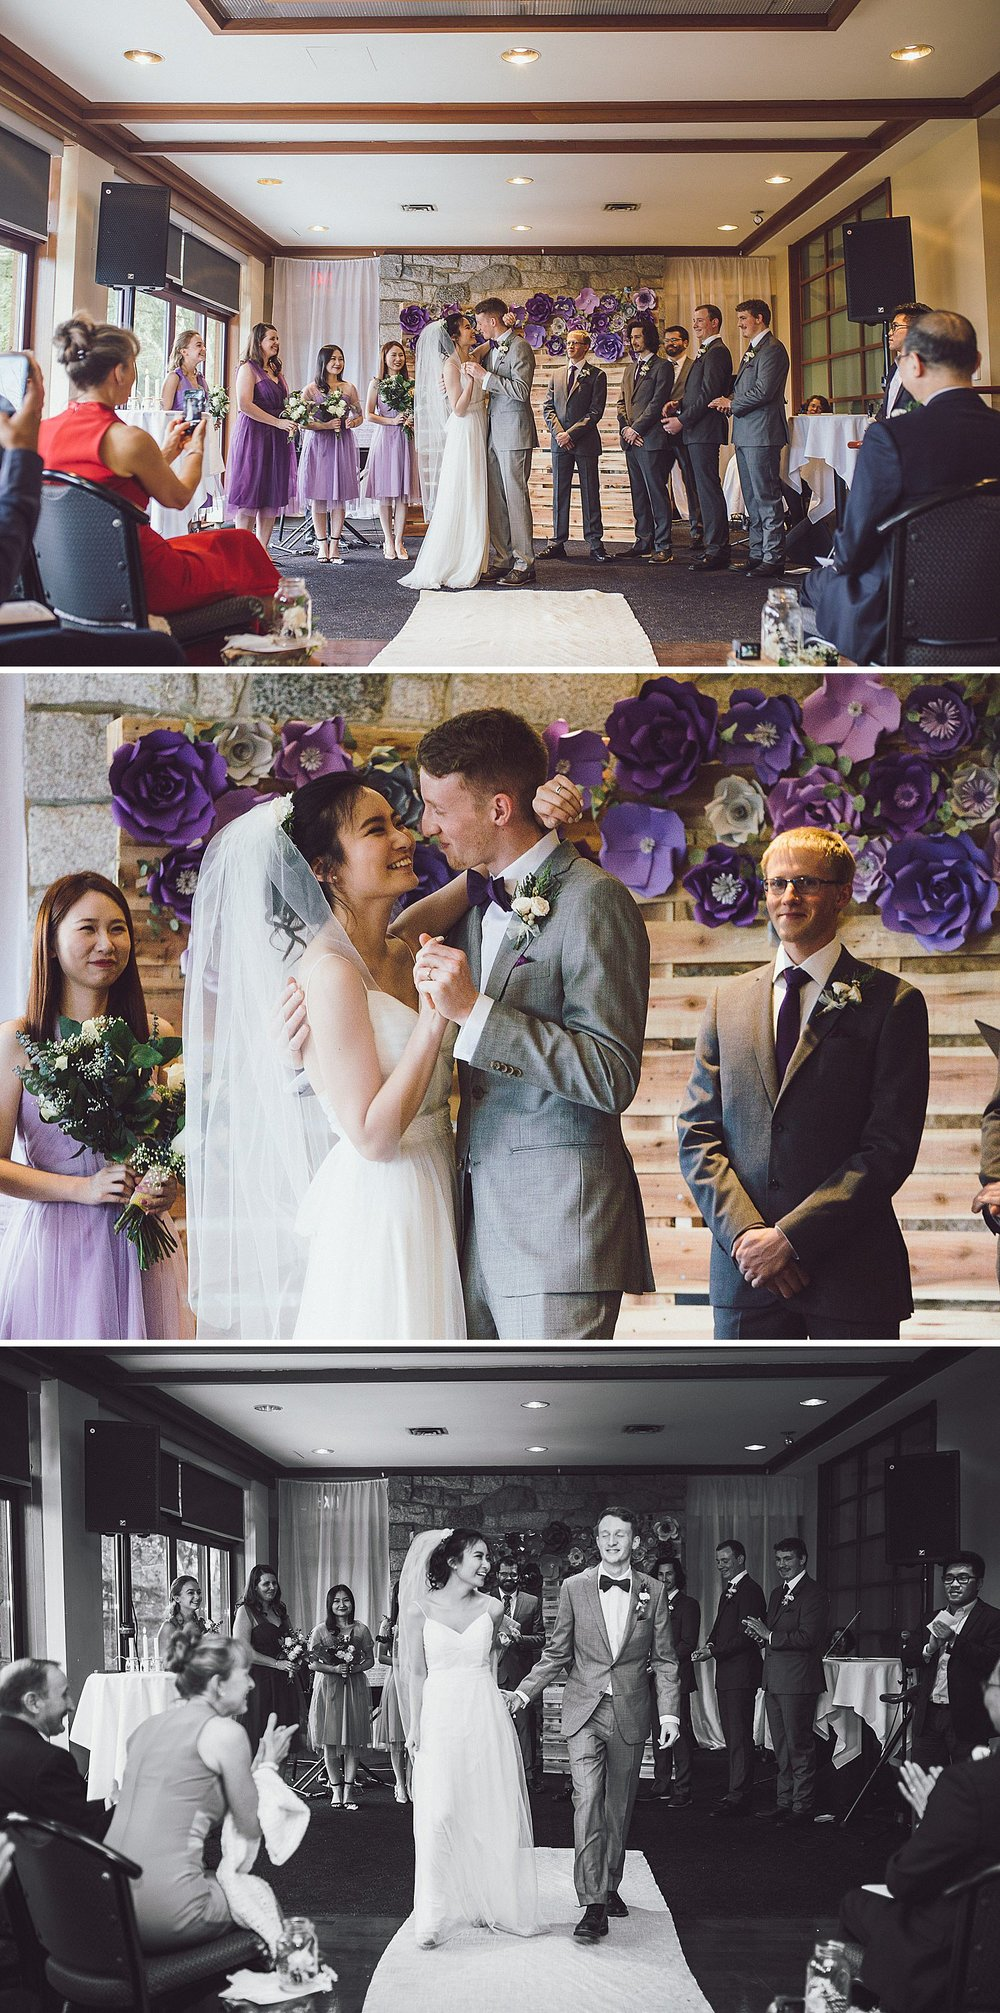 Angel and Tim get married at the Diamond Alumni Centre